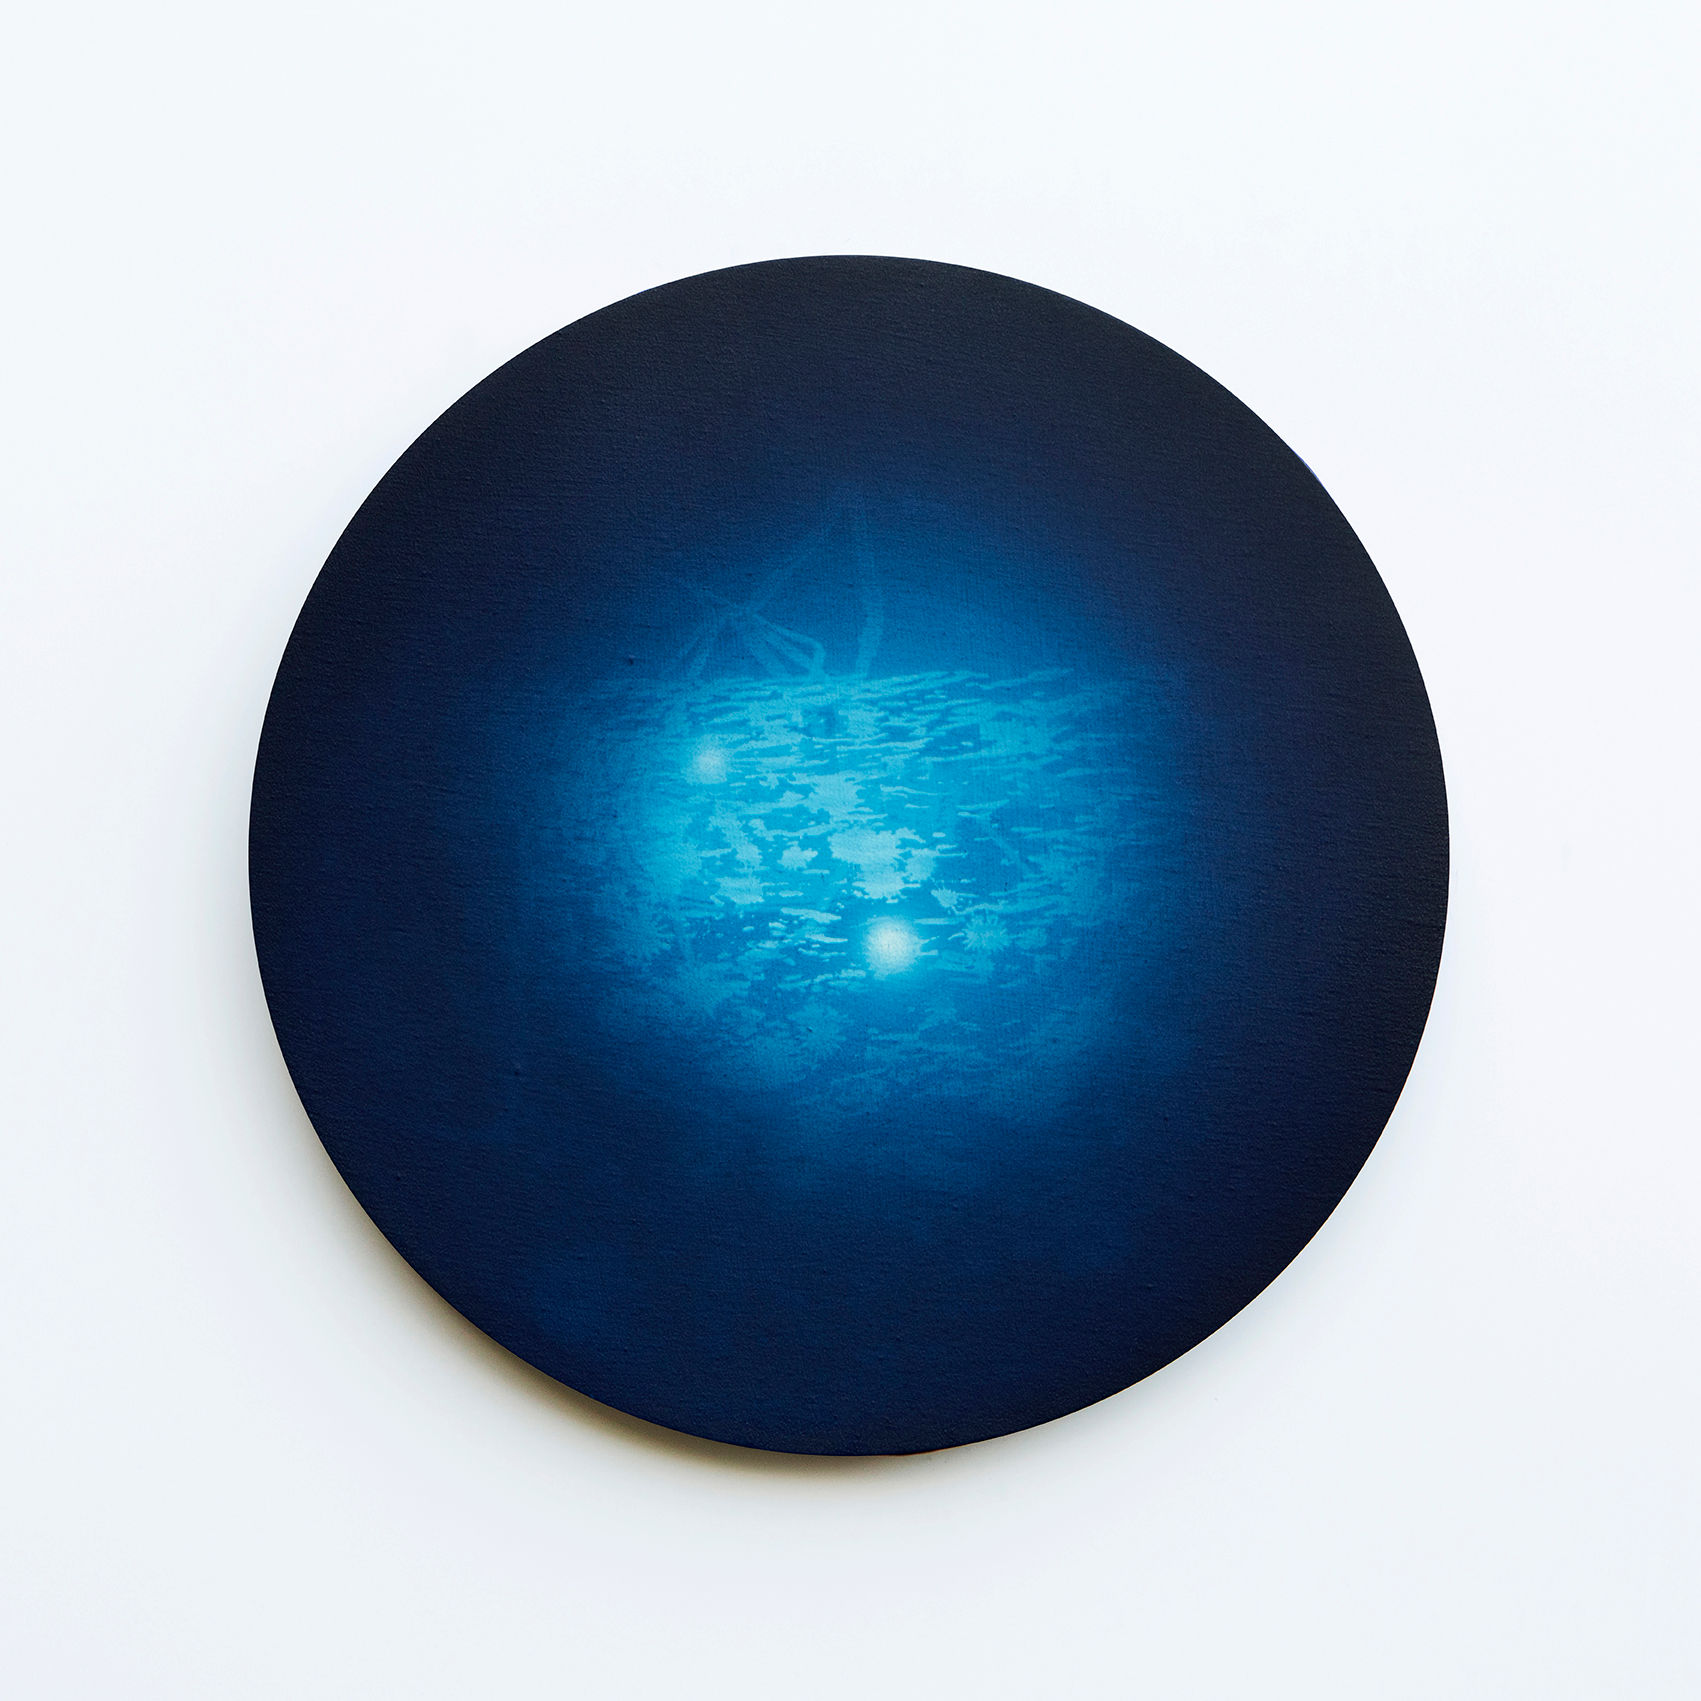 WATERSCAPE_내 안의 바깥 44, Diameter 40cm, Traditional pigment, water-print, water-drawing on canvas, 2018